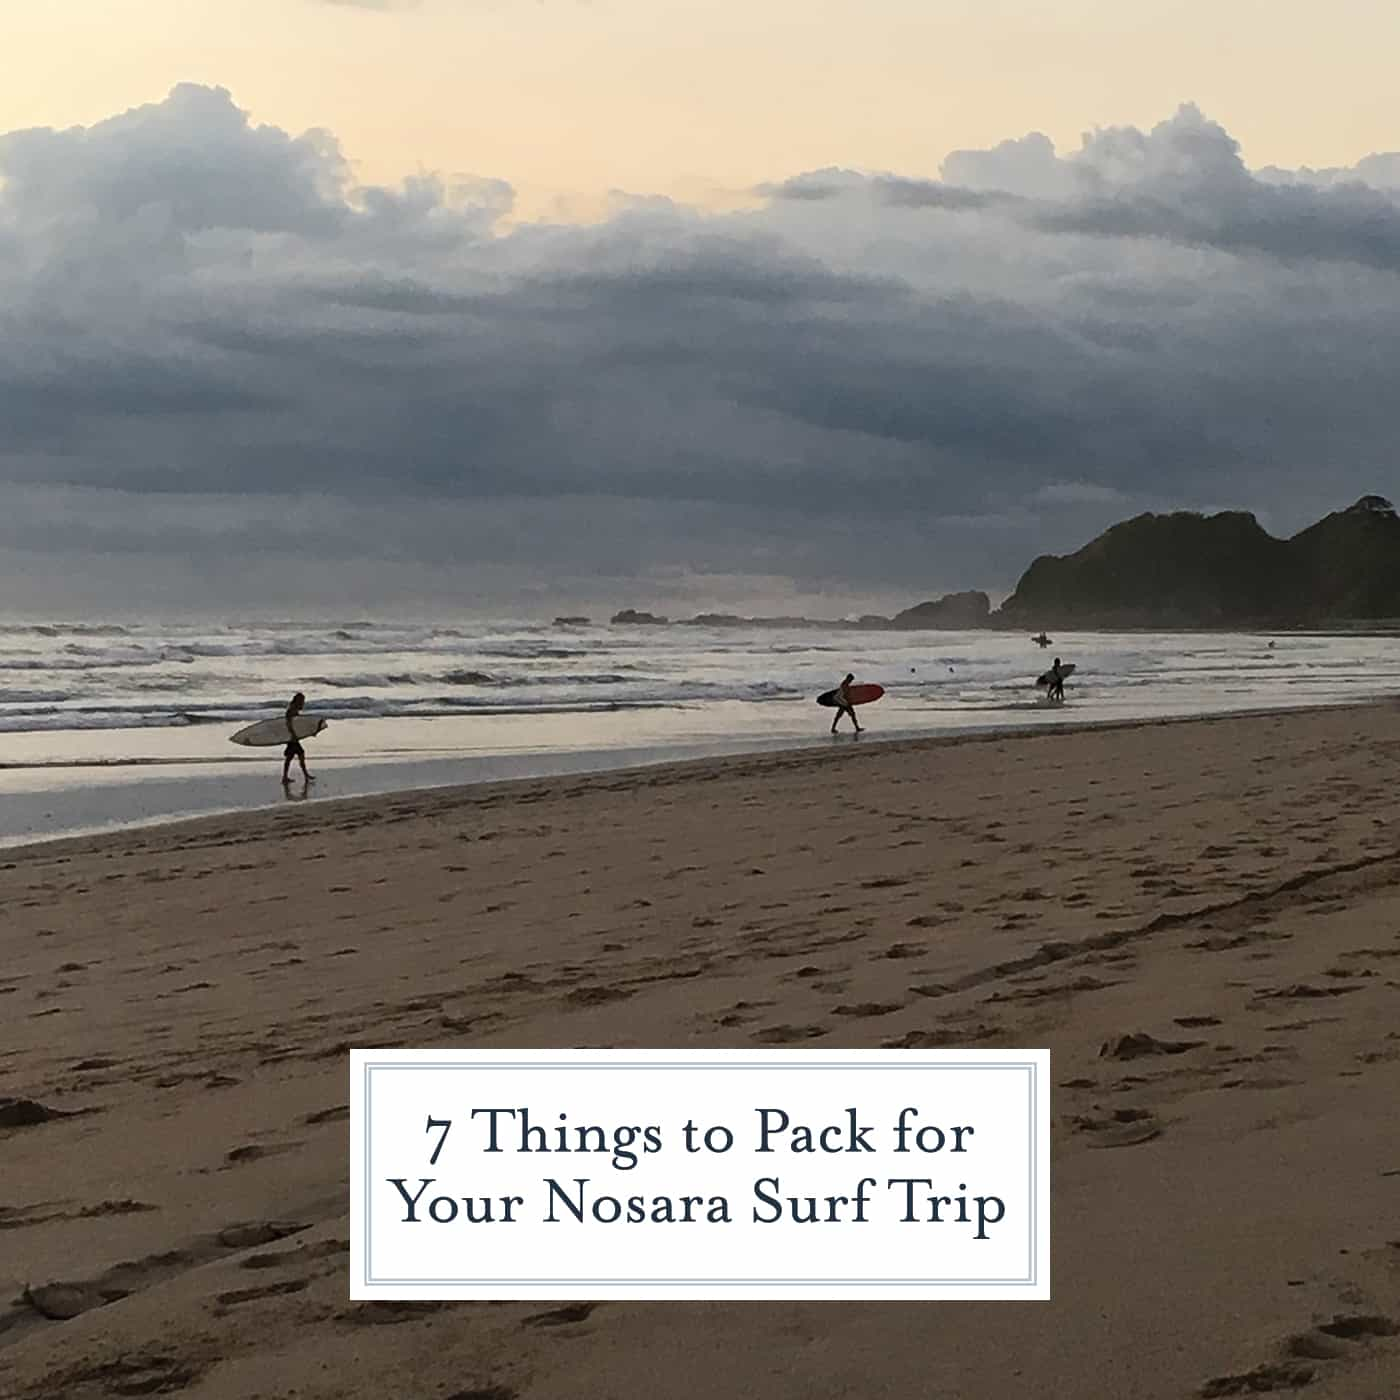 c67c5b8821e1 7 Things to Pack for your surf trip to Nosata, Costa Rica to be well